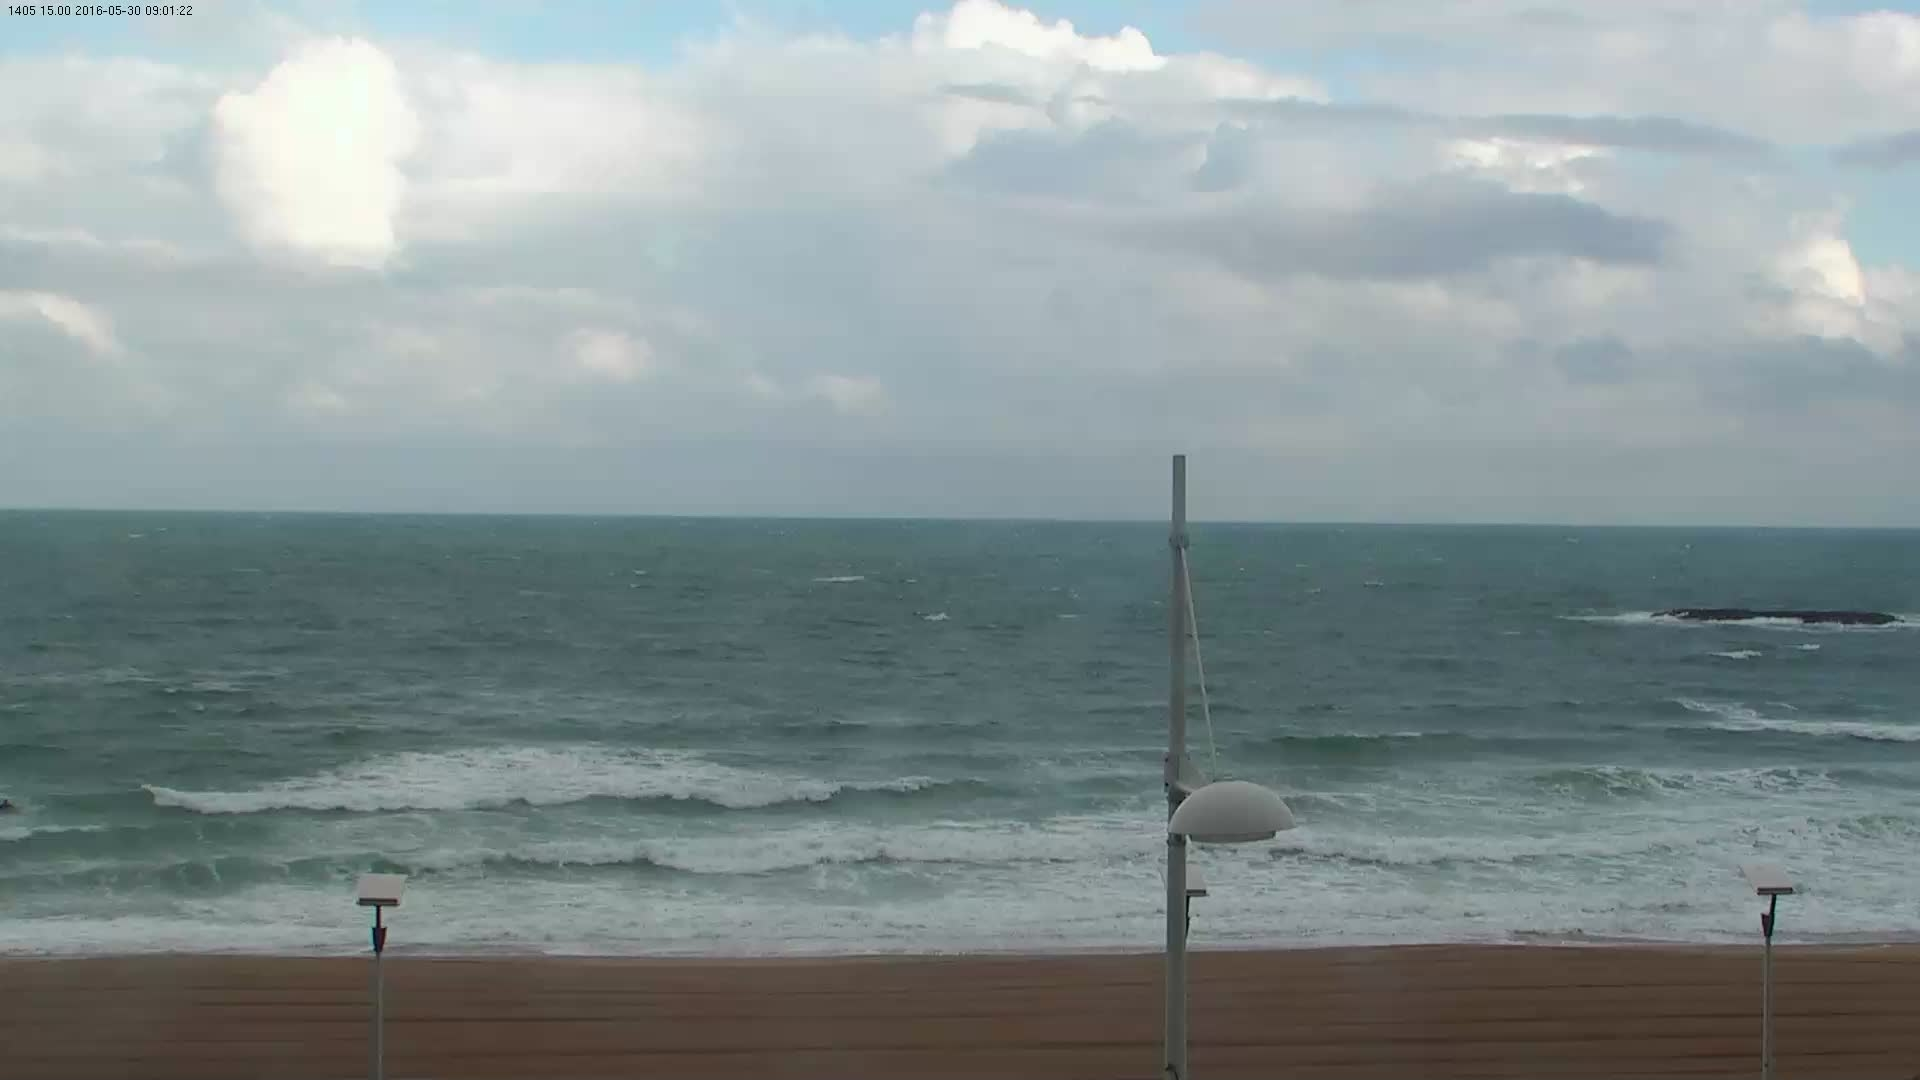 Webcam image from Biarritz Grande Plage